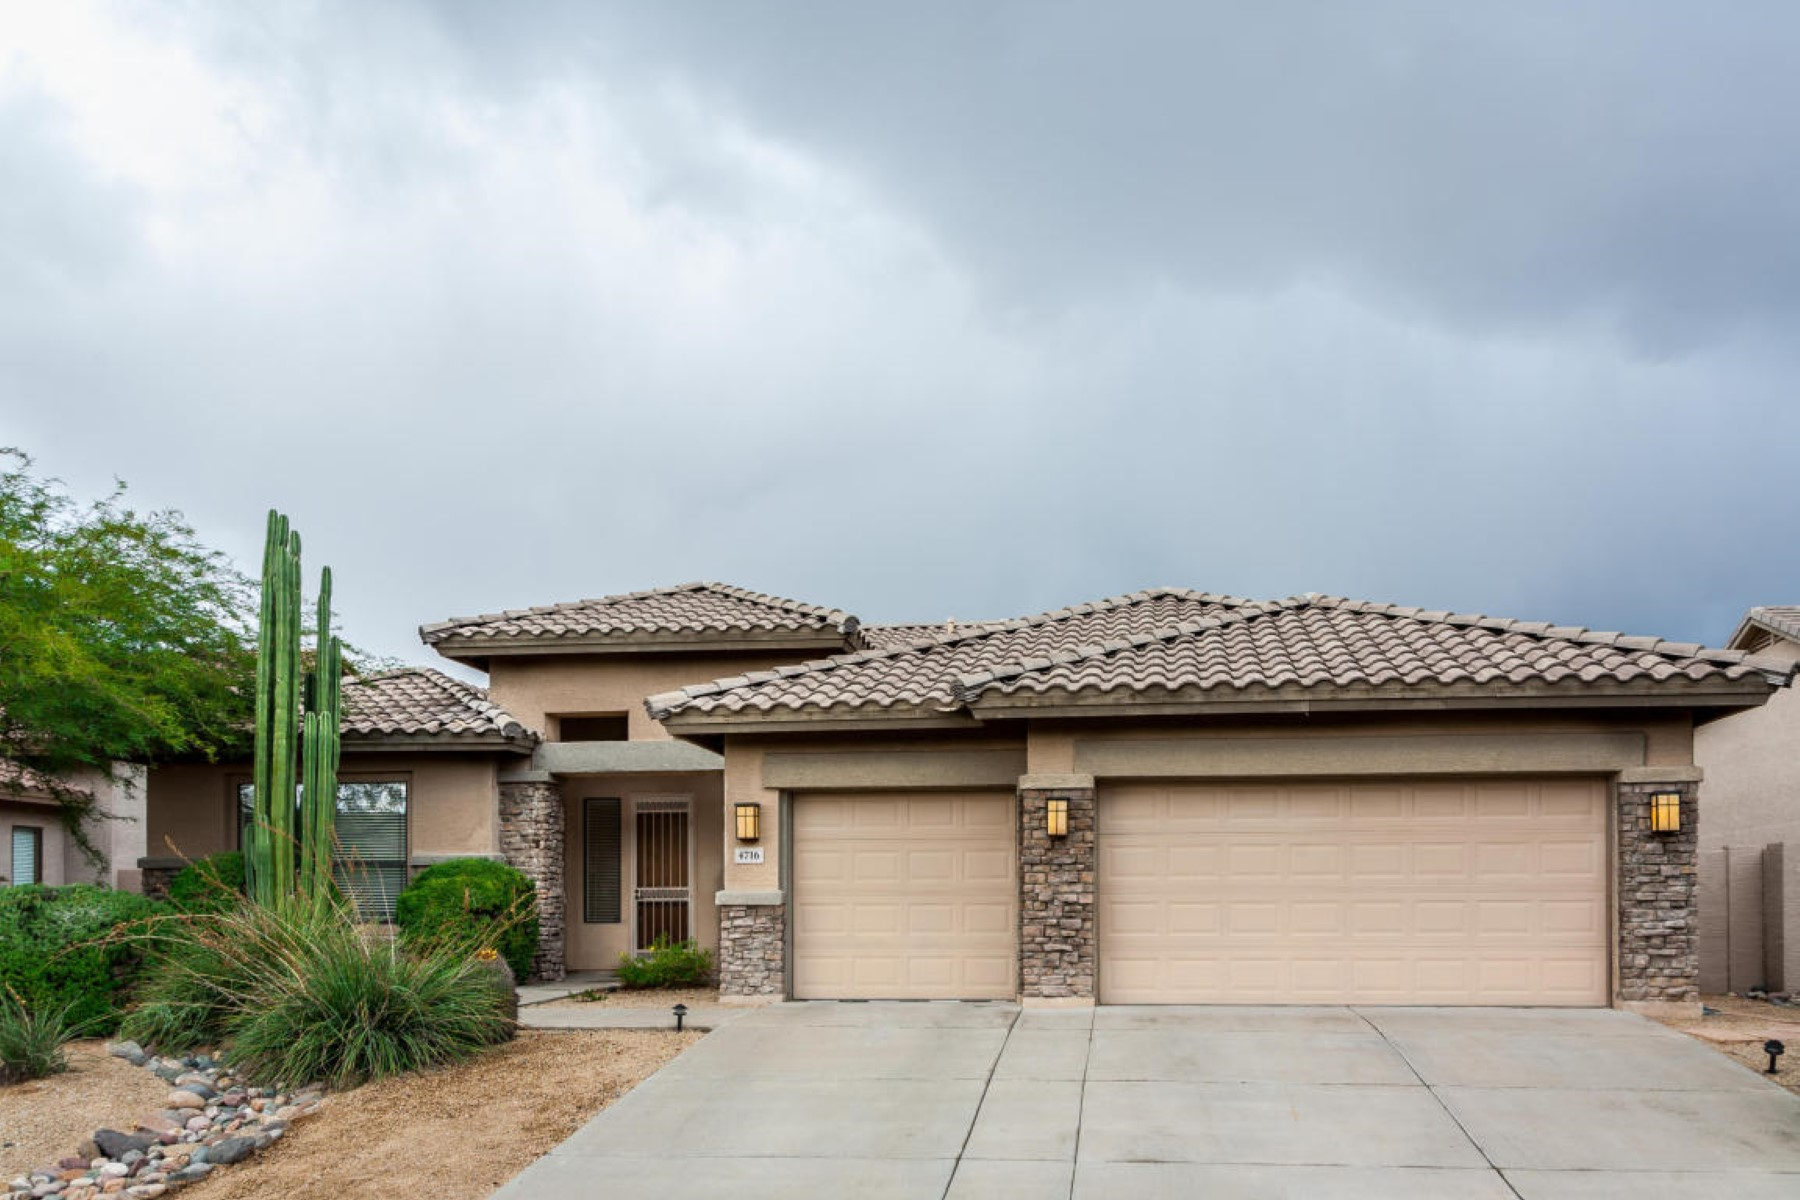 Single Family Home for Sale at In the intimate enclave of The Estates at Tatum Highlands 4716 E Spur Dr Cave Creek, Arizona 85331 United States